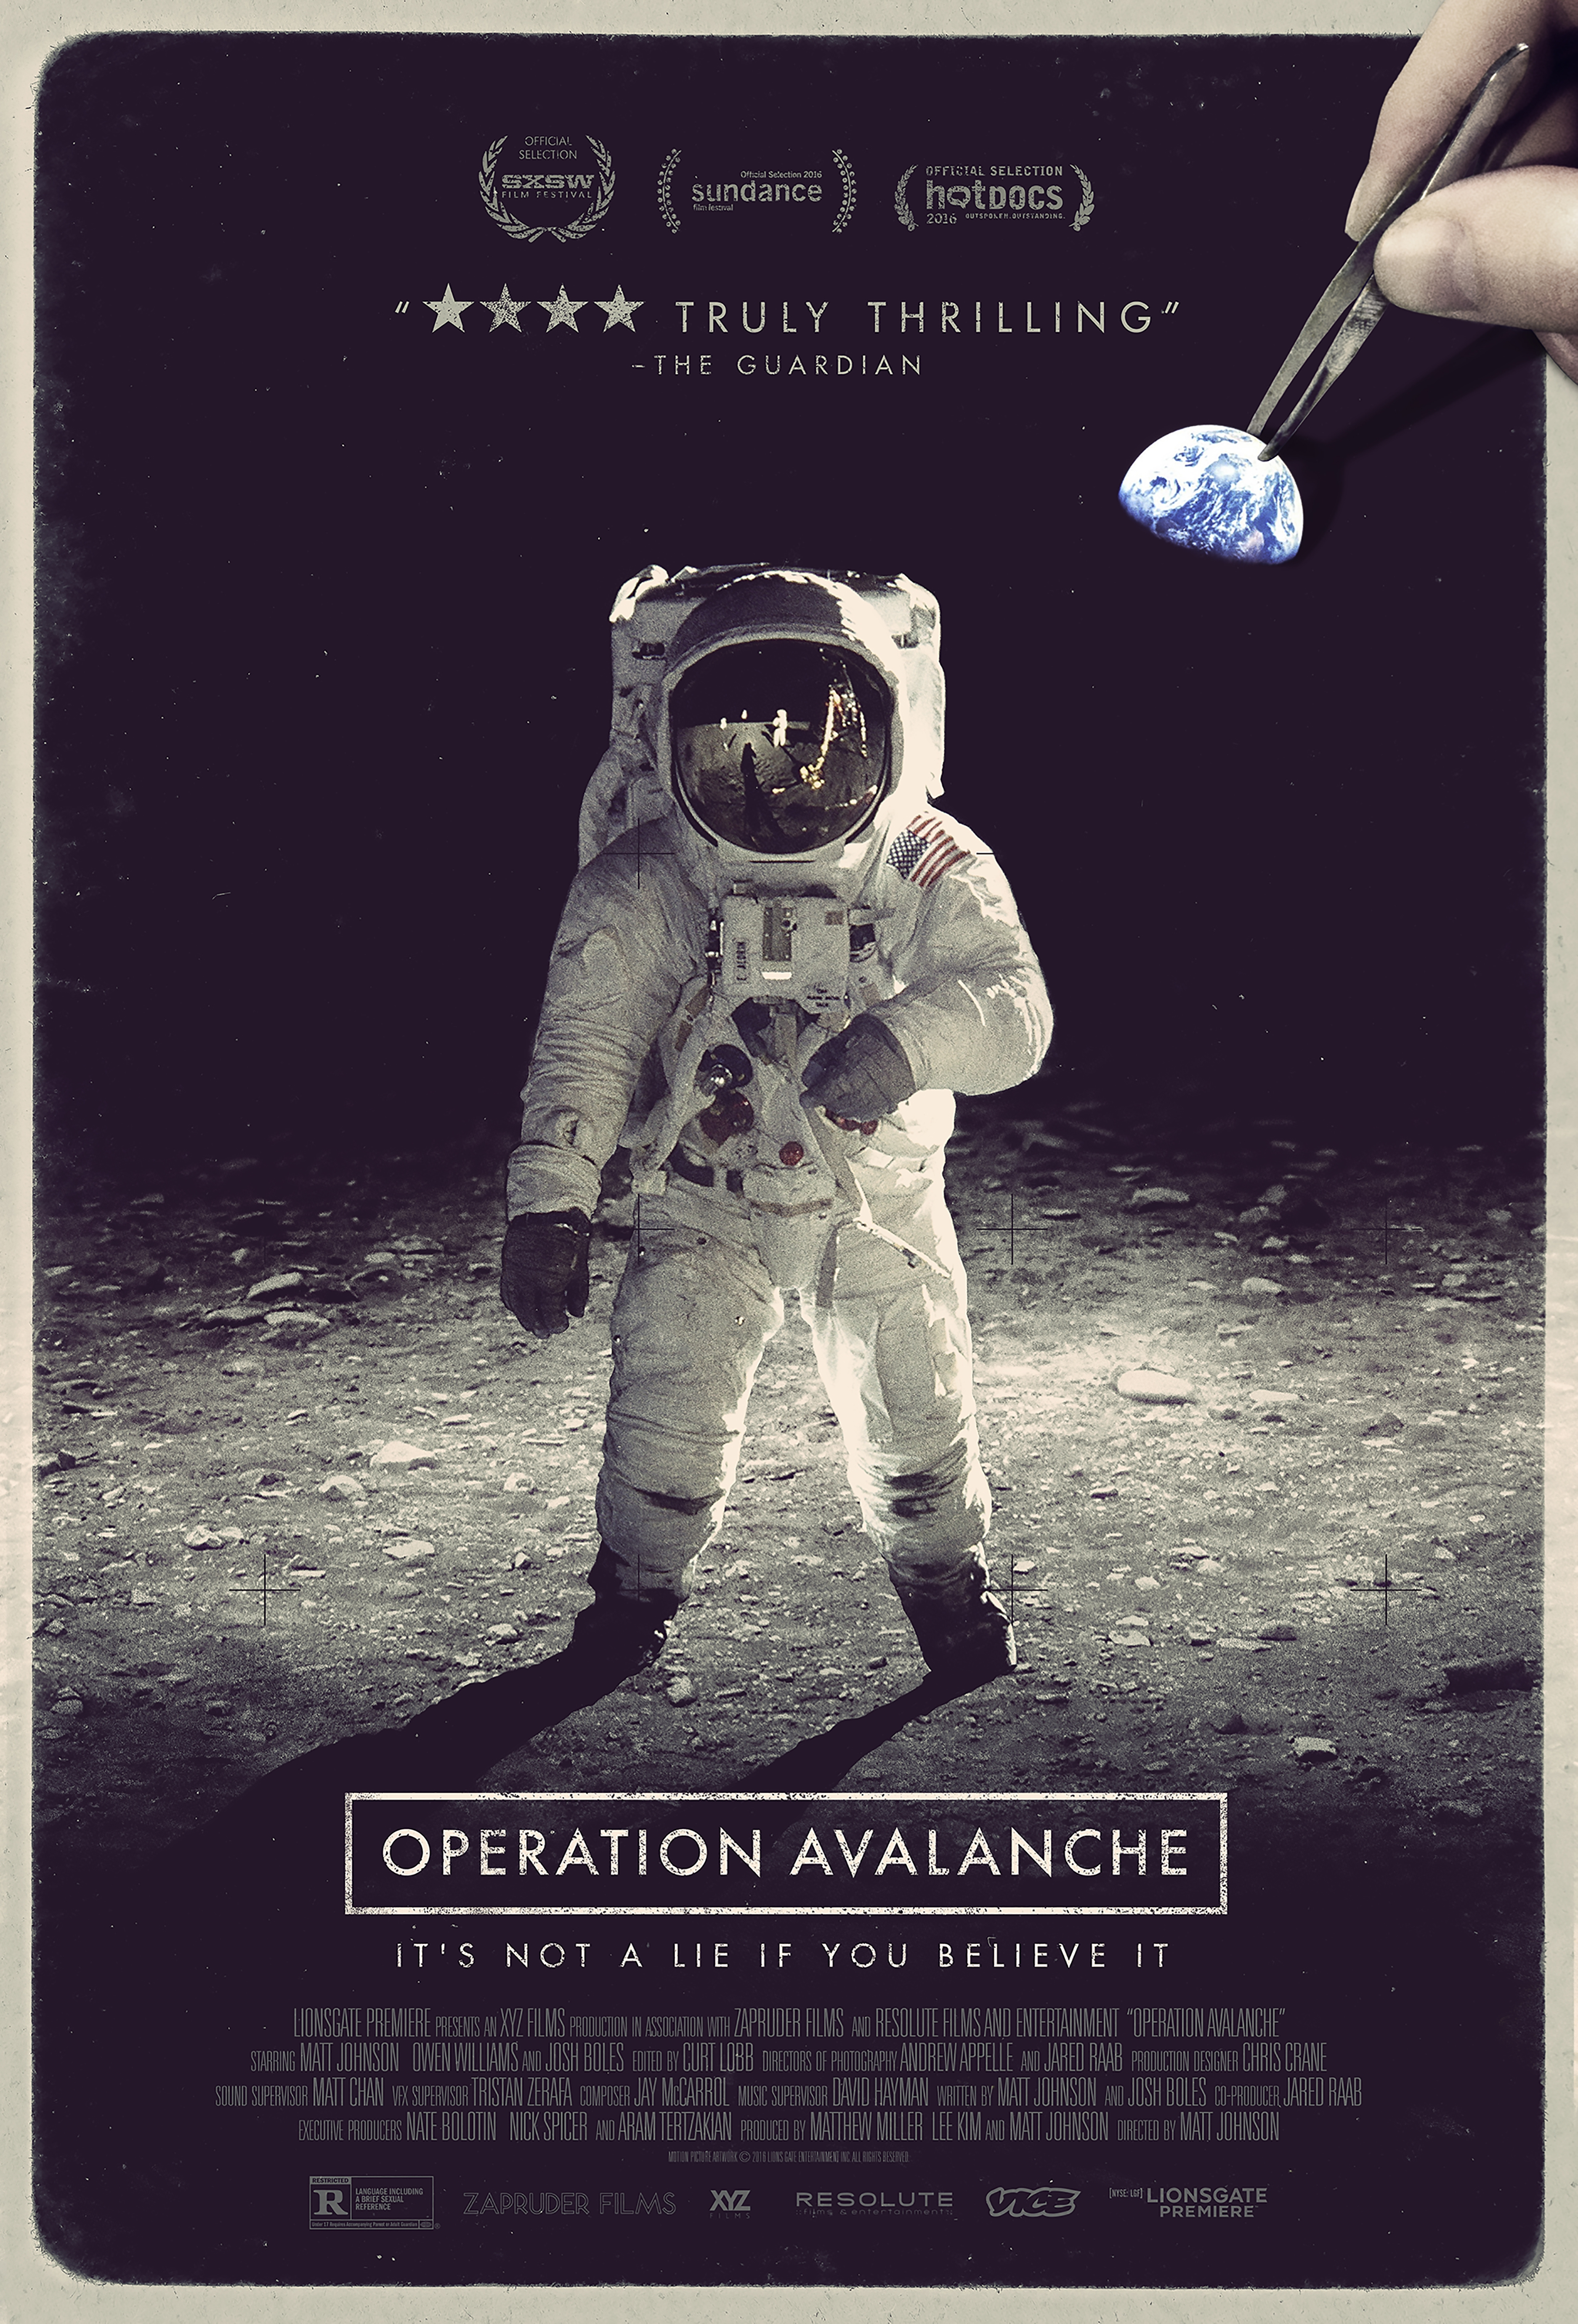 Official movie poster for Operation Avalanche